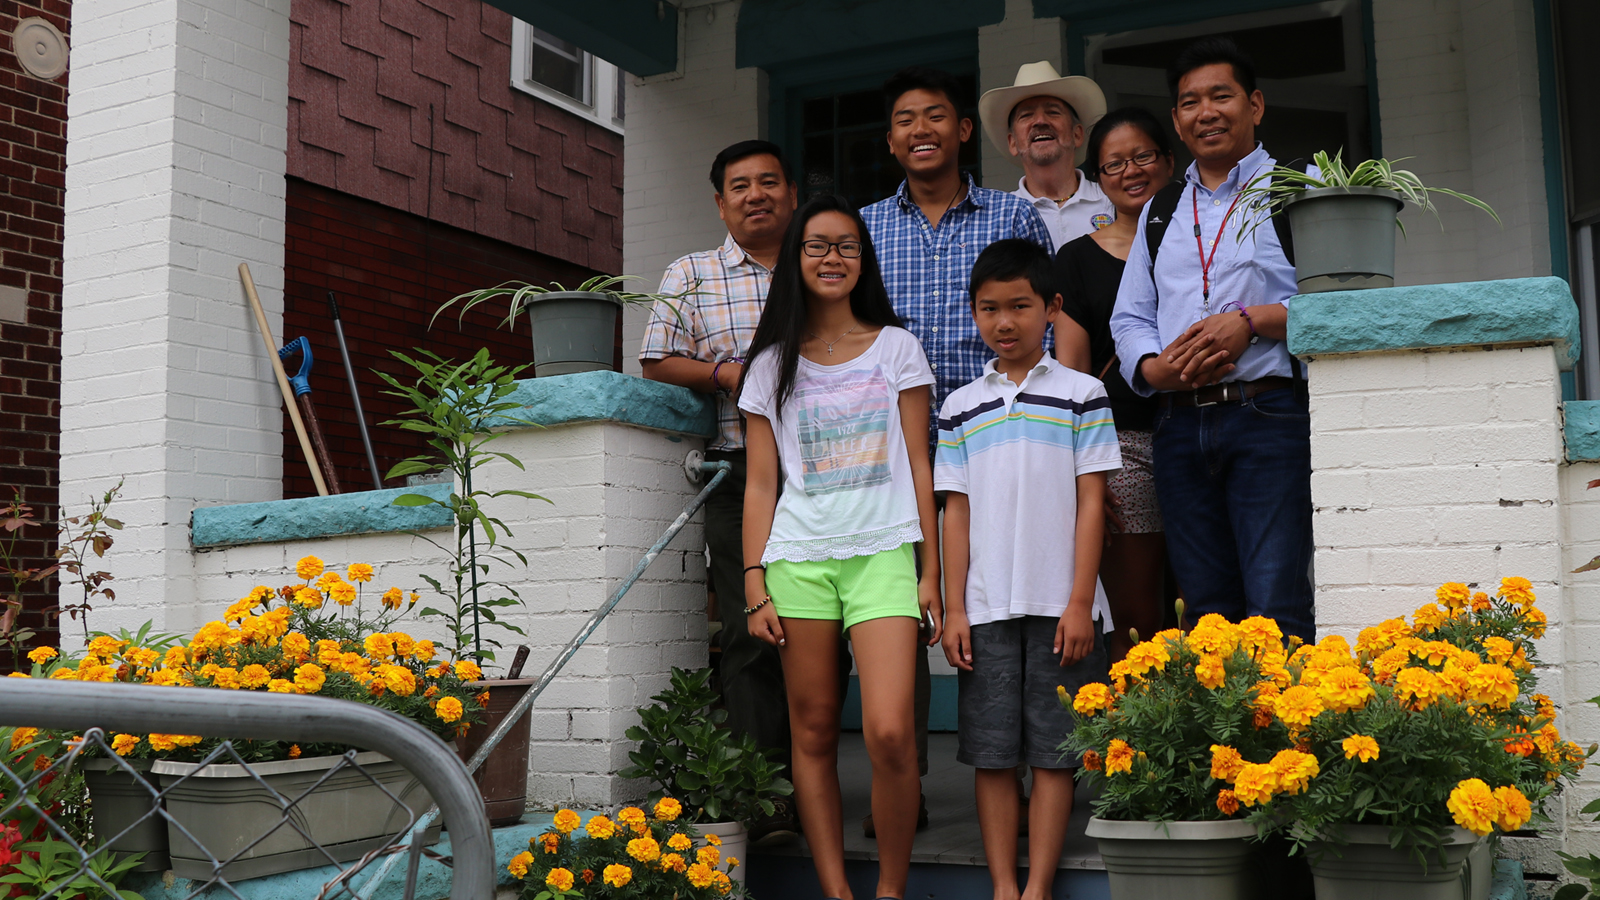 Brothers Minh and Tom Trân, their family, and Vietnam veteran Norm Murray. The Trân family escaped communist Vietnam in the late 1970's after the Vietnam war.